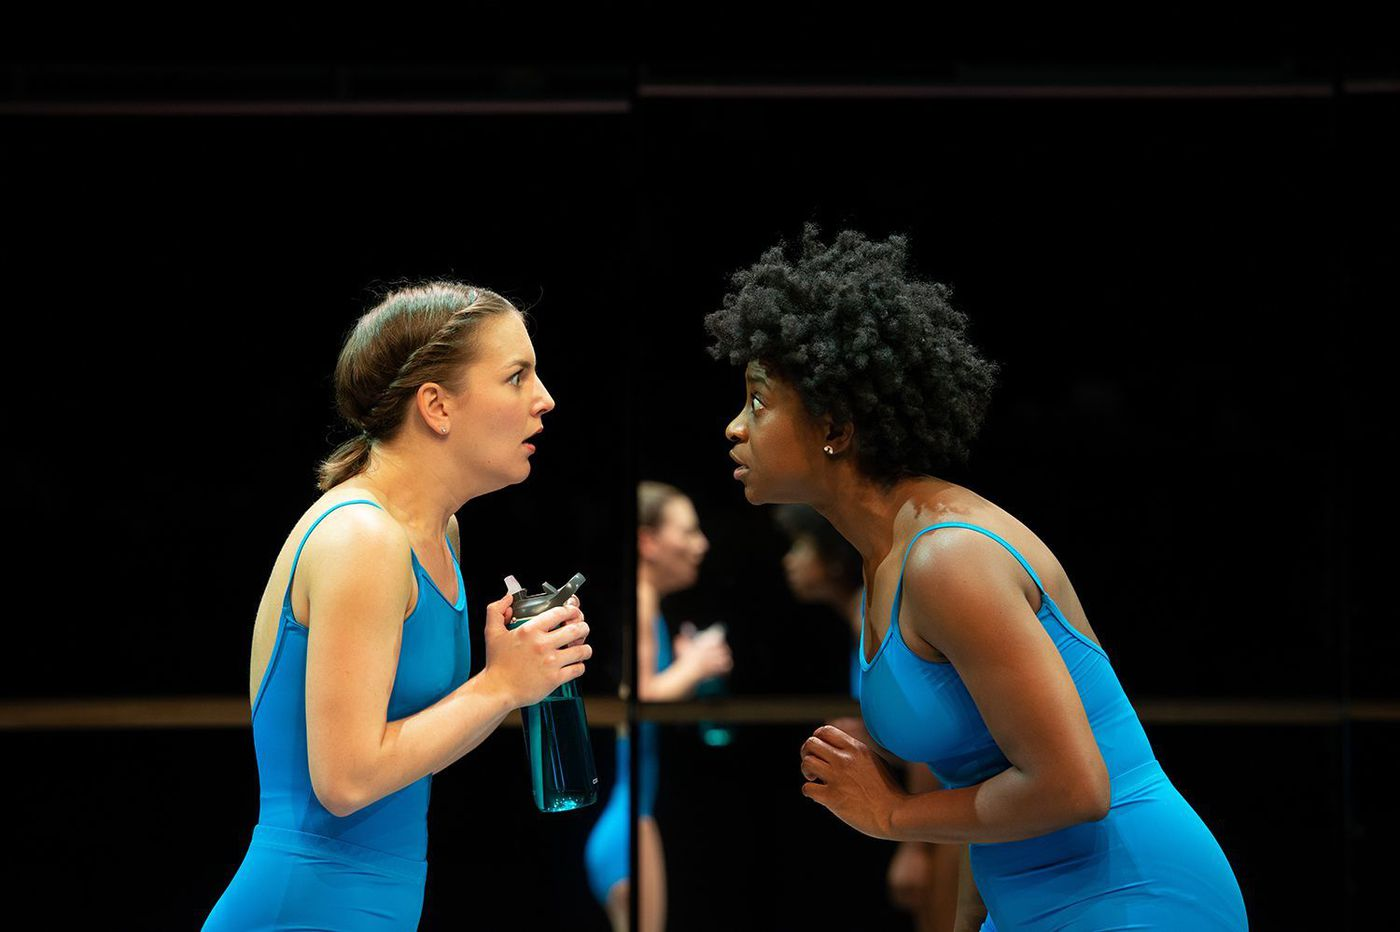 'Dance Nation' at Wilma Theater: An entertaining look at the fierce, shy world of the 13-year-old girl